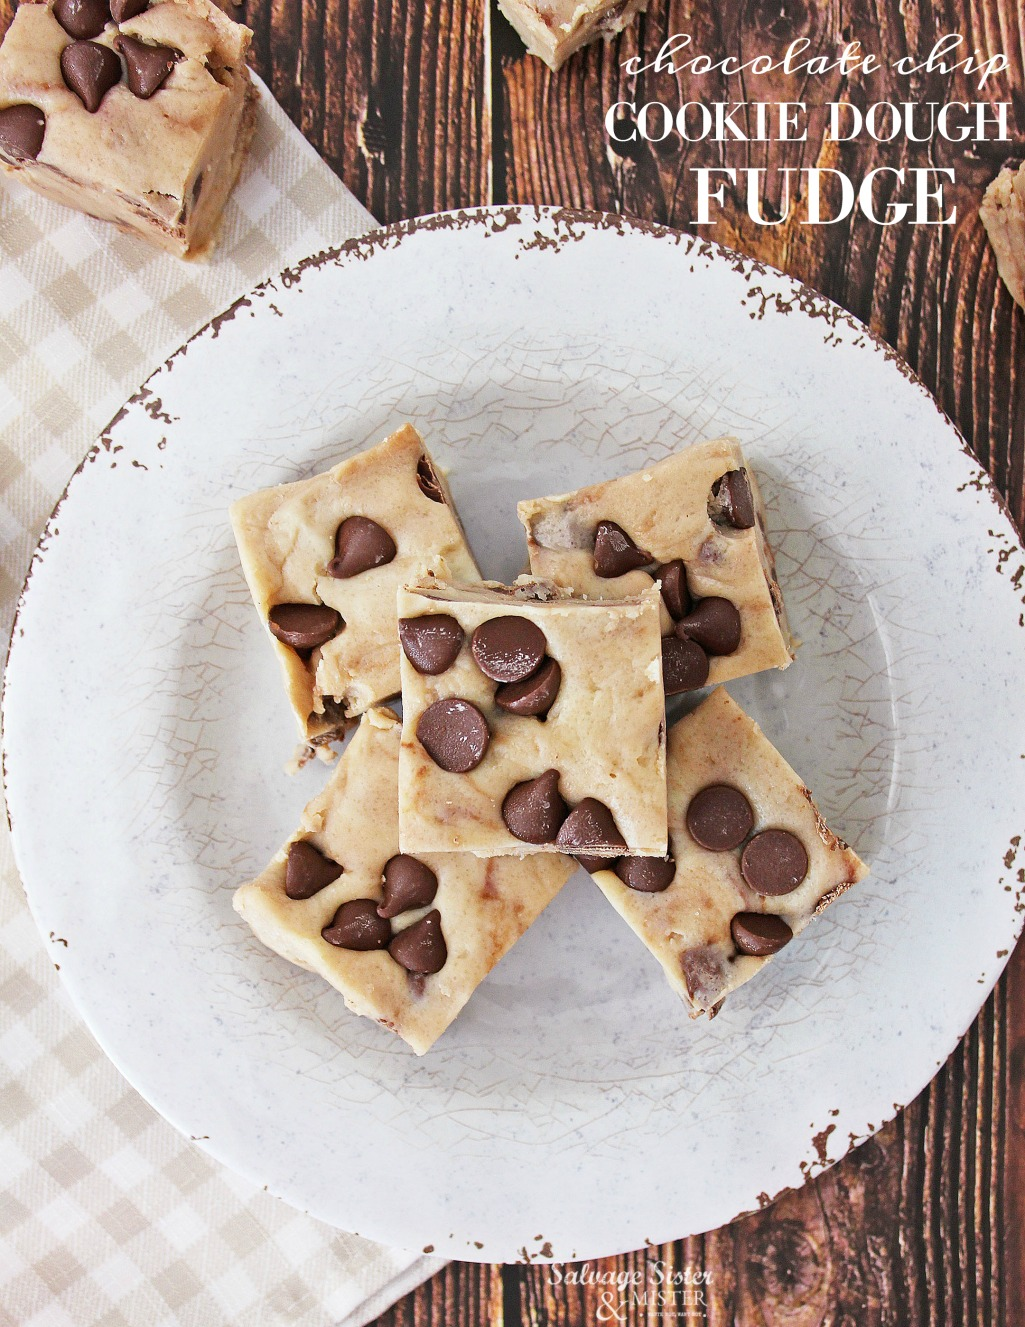 Why put dookie dough in the oven when you can put it in your mouth? Recipe chocolate chip cookie dough fudge is great for yourself, cookie exchange, neighbor gifts, for the office and more. Homemade and easy to make this is great for the gift giving season or anytime of year. Full recipe on salvagesisterandmister.com